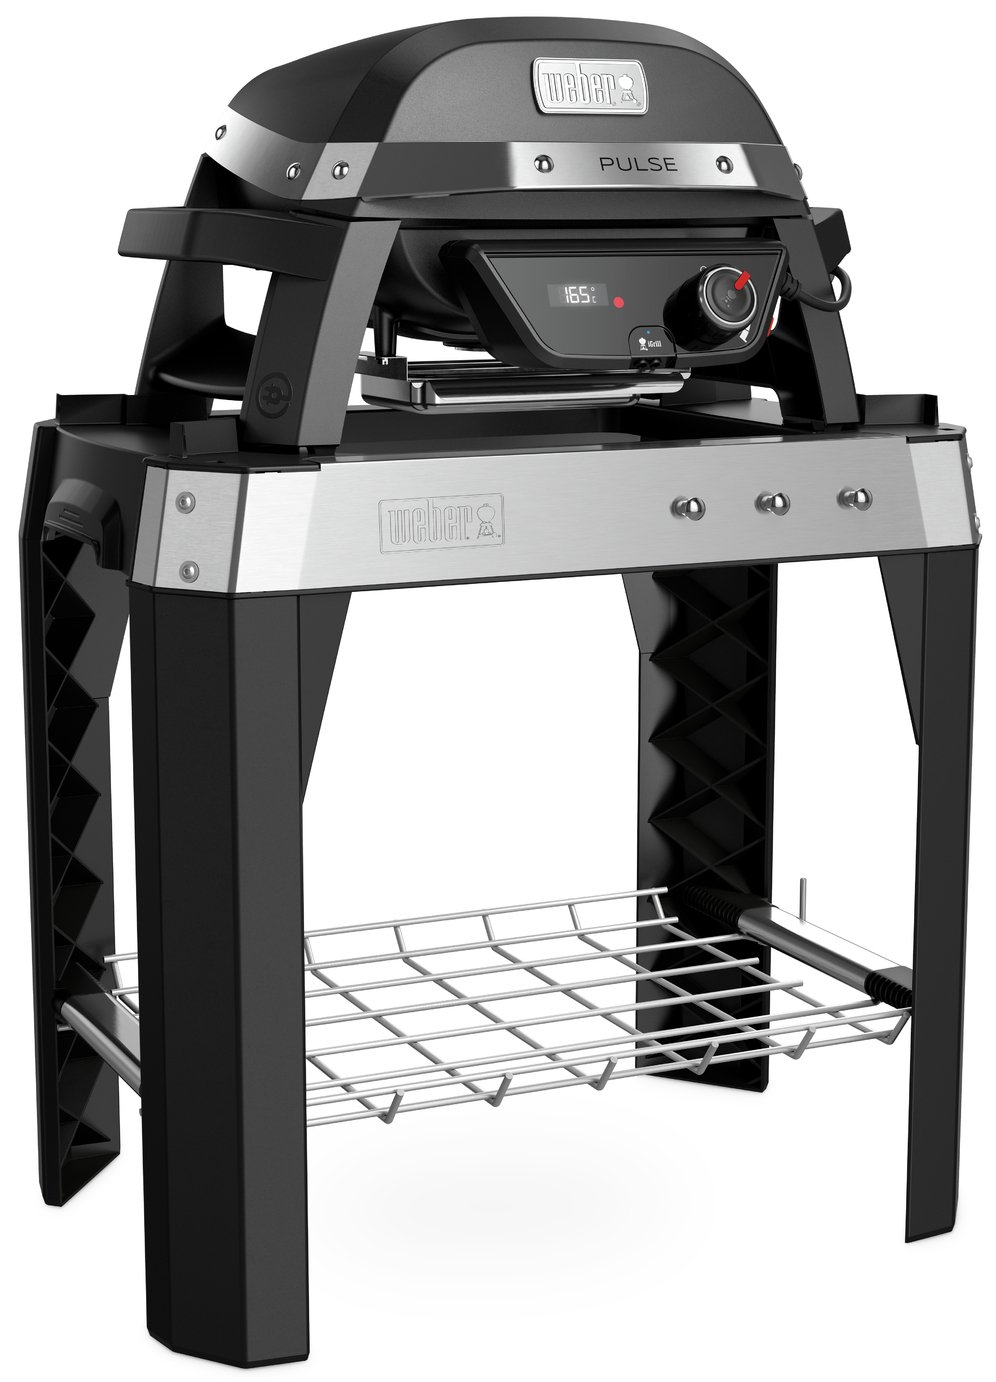 Weber Pulse 1000 Electric BBQ Grill with Stand